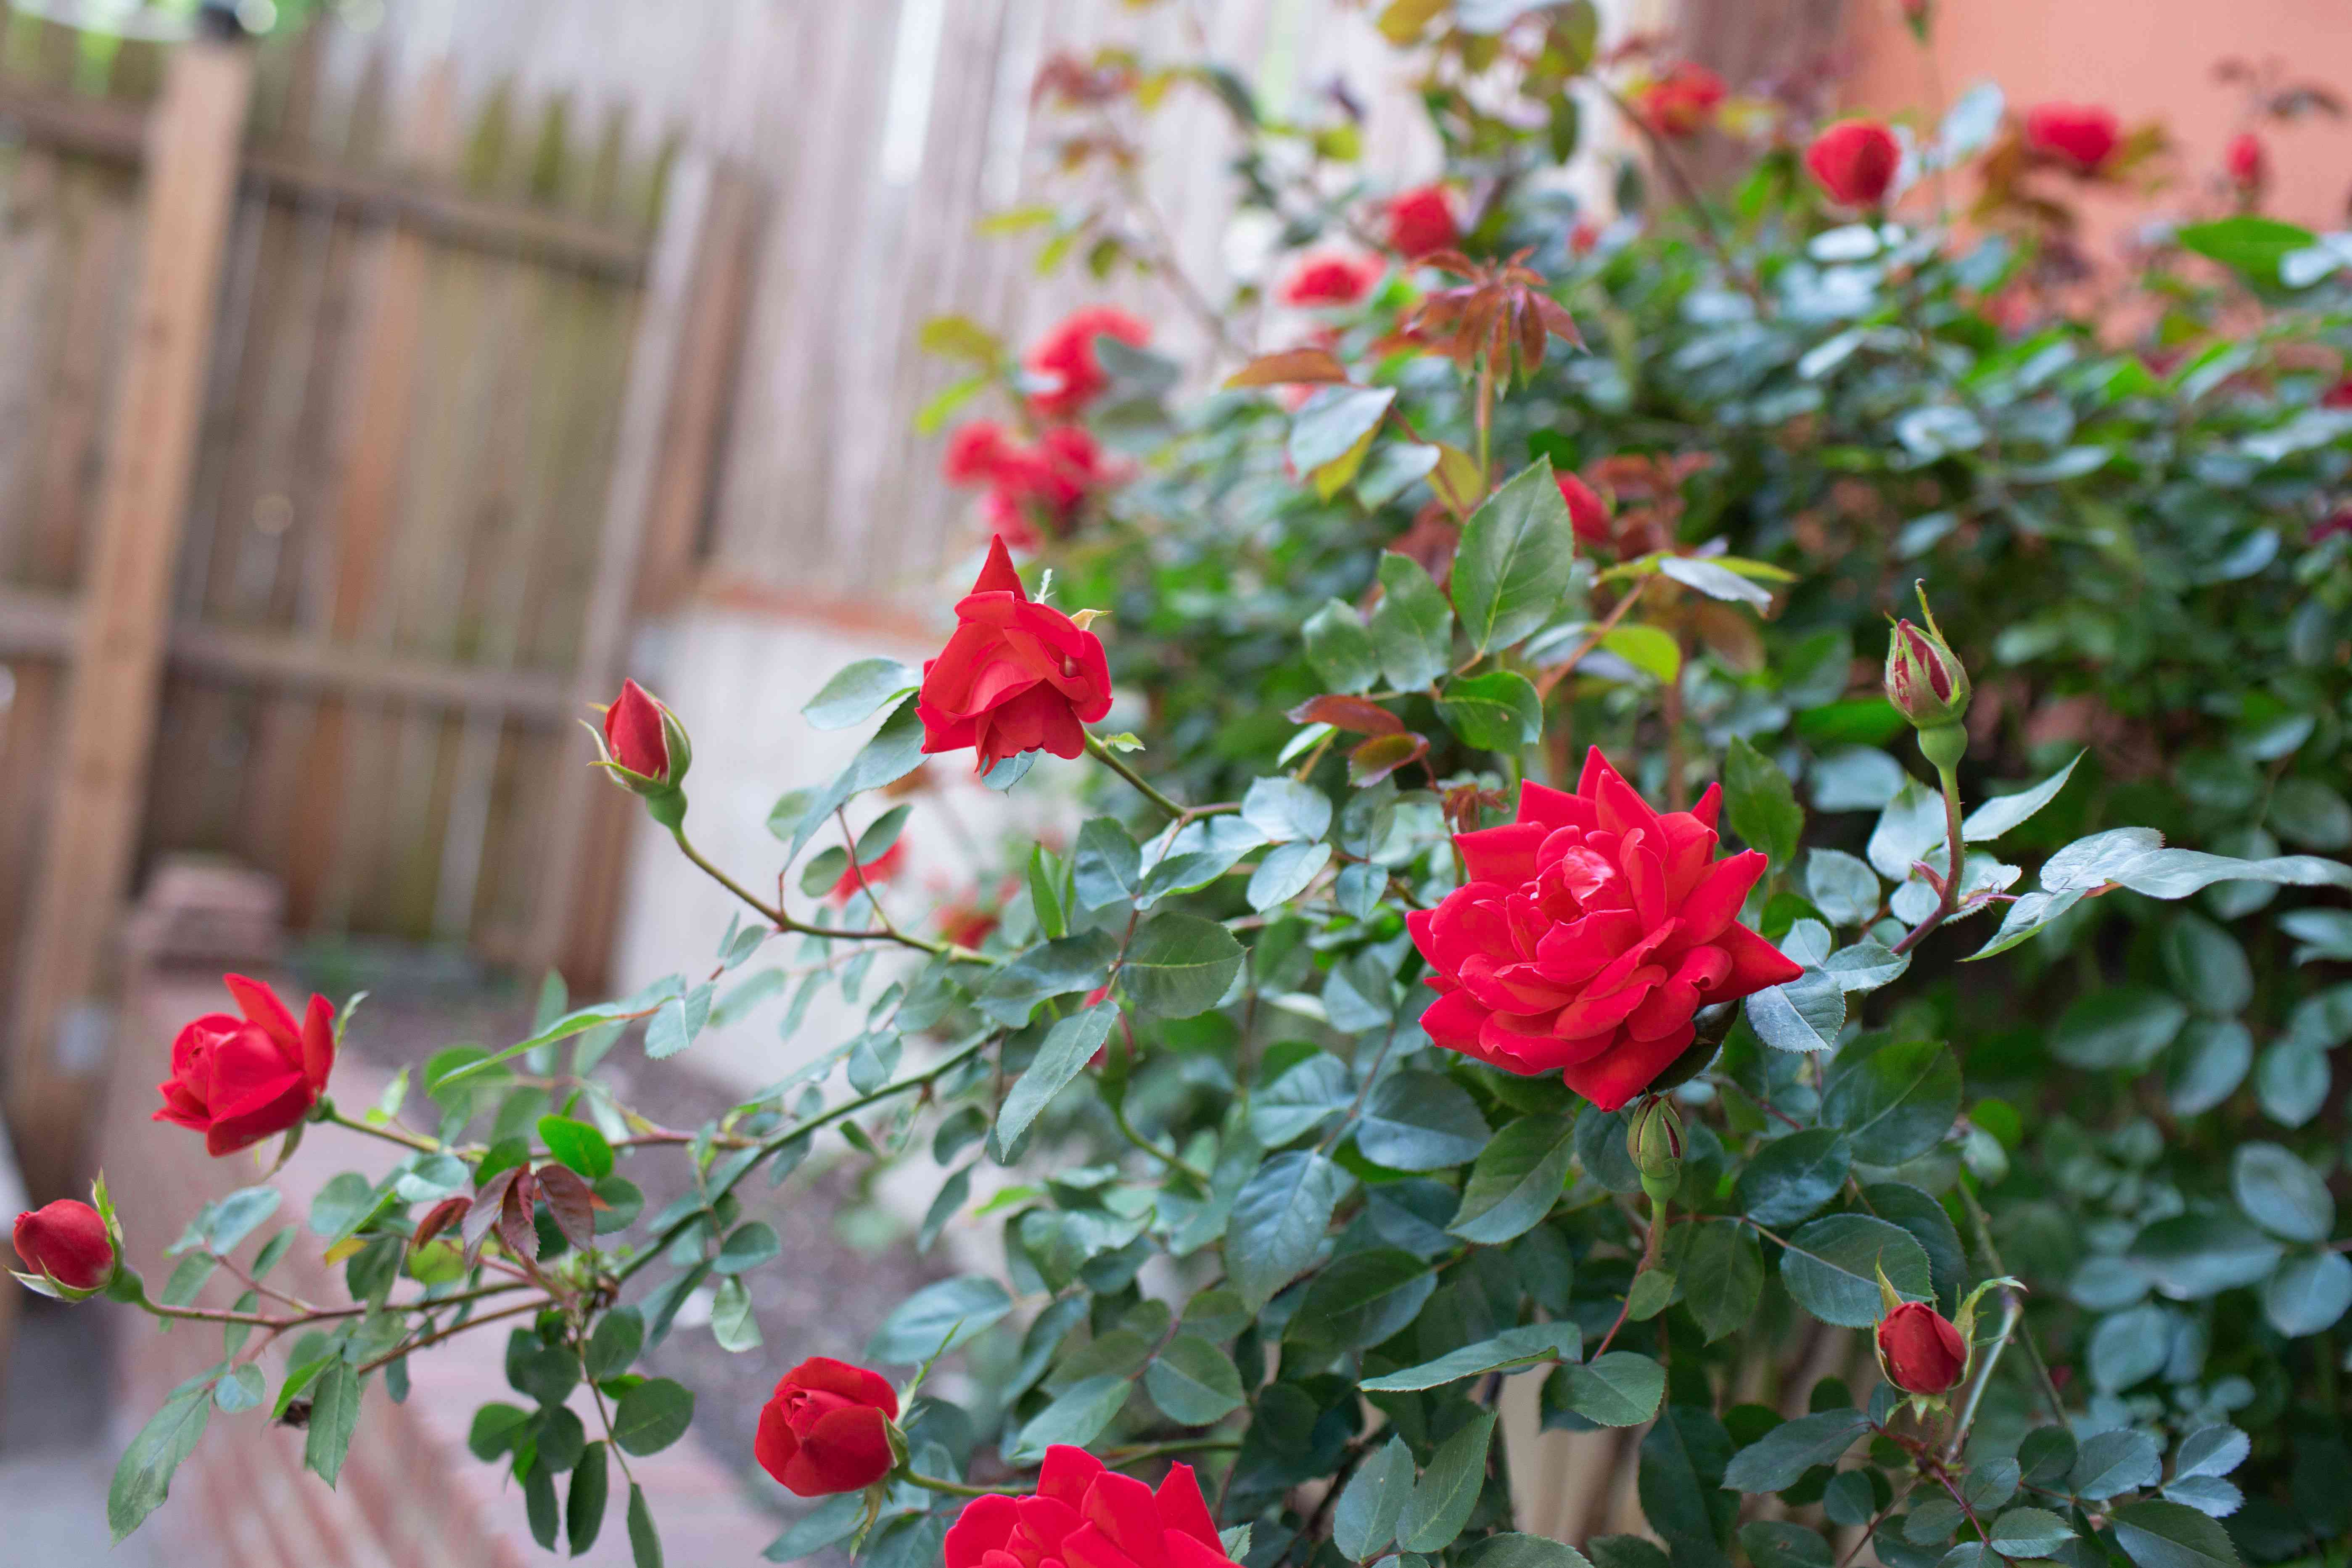 Rose bush with bright red flowers in backyard garden